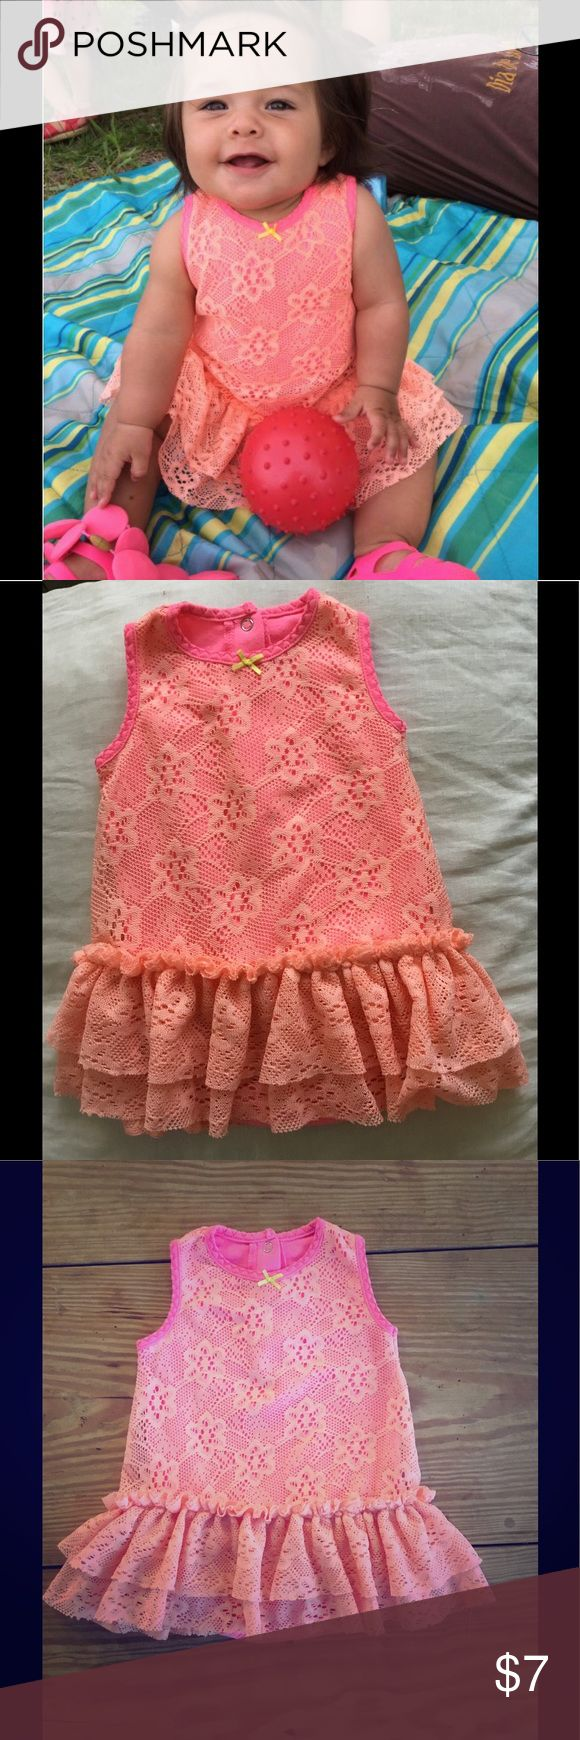 Melon lace dress overlay w/ bodysuit in neon pink Melon color lace with 2 tier ruffles at hem. Neon pink bodysuit underneath Baby Starters Dresses Casual